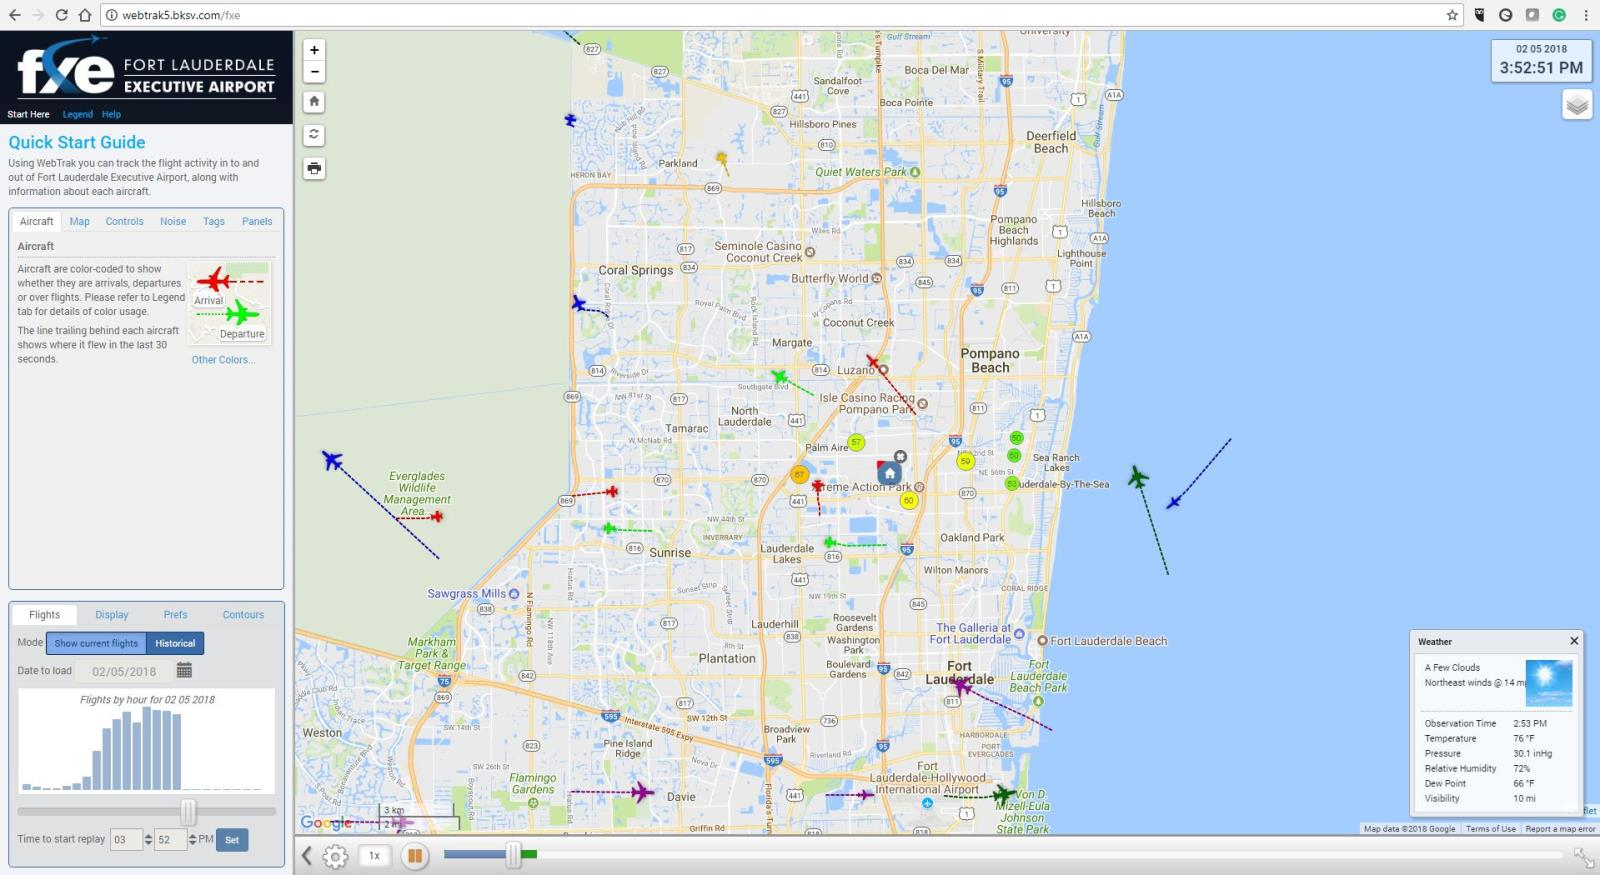 City of Fort Lauderdale, FL : City News : Fort Lauderdale ... Map Fort Lauderdale Airport on long island islip airport map, national airport map, st. petersburg airport map, ponce airport map, air force base homestead florida map, colorado airport map, runway heathrow airport map, key west airport terminal map, car rental fll airport map, ft myers airport map, montreal airport map, ft lauderdale fl airport map, washington airport map, hayward airport map, los angeles intl airport map, george bush airport terminal map, placencia airport map, flint airport map, o'hare airport runway map, richmond airport map,